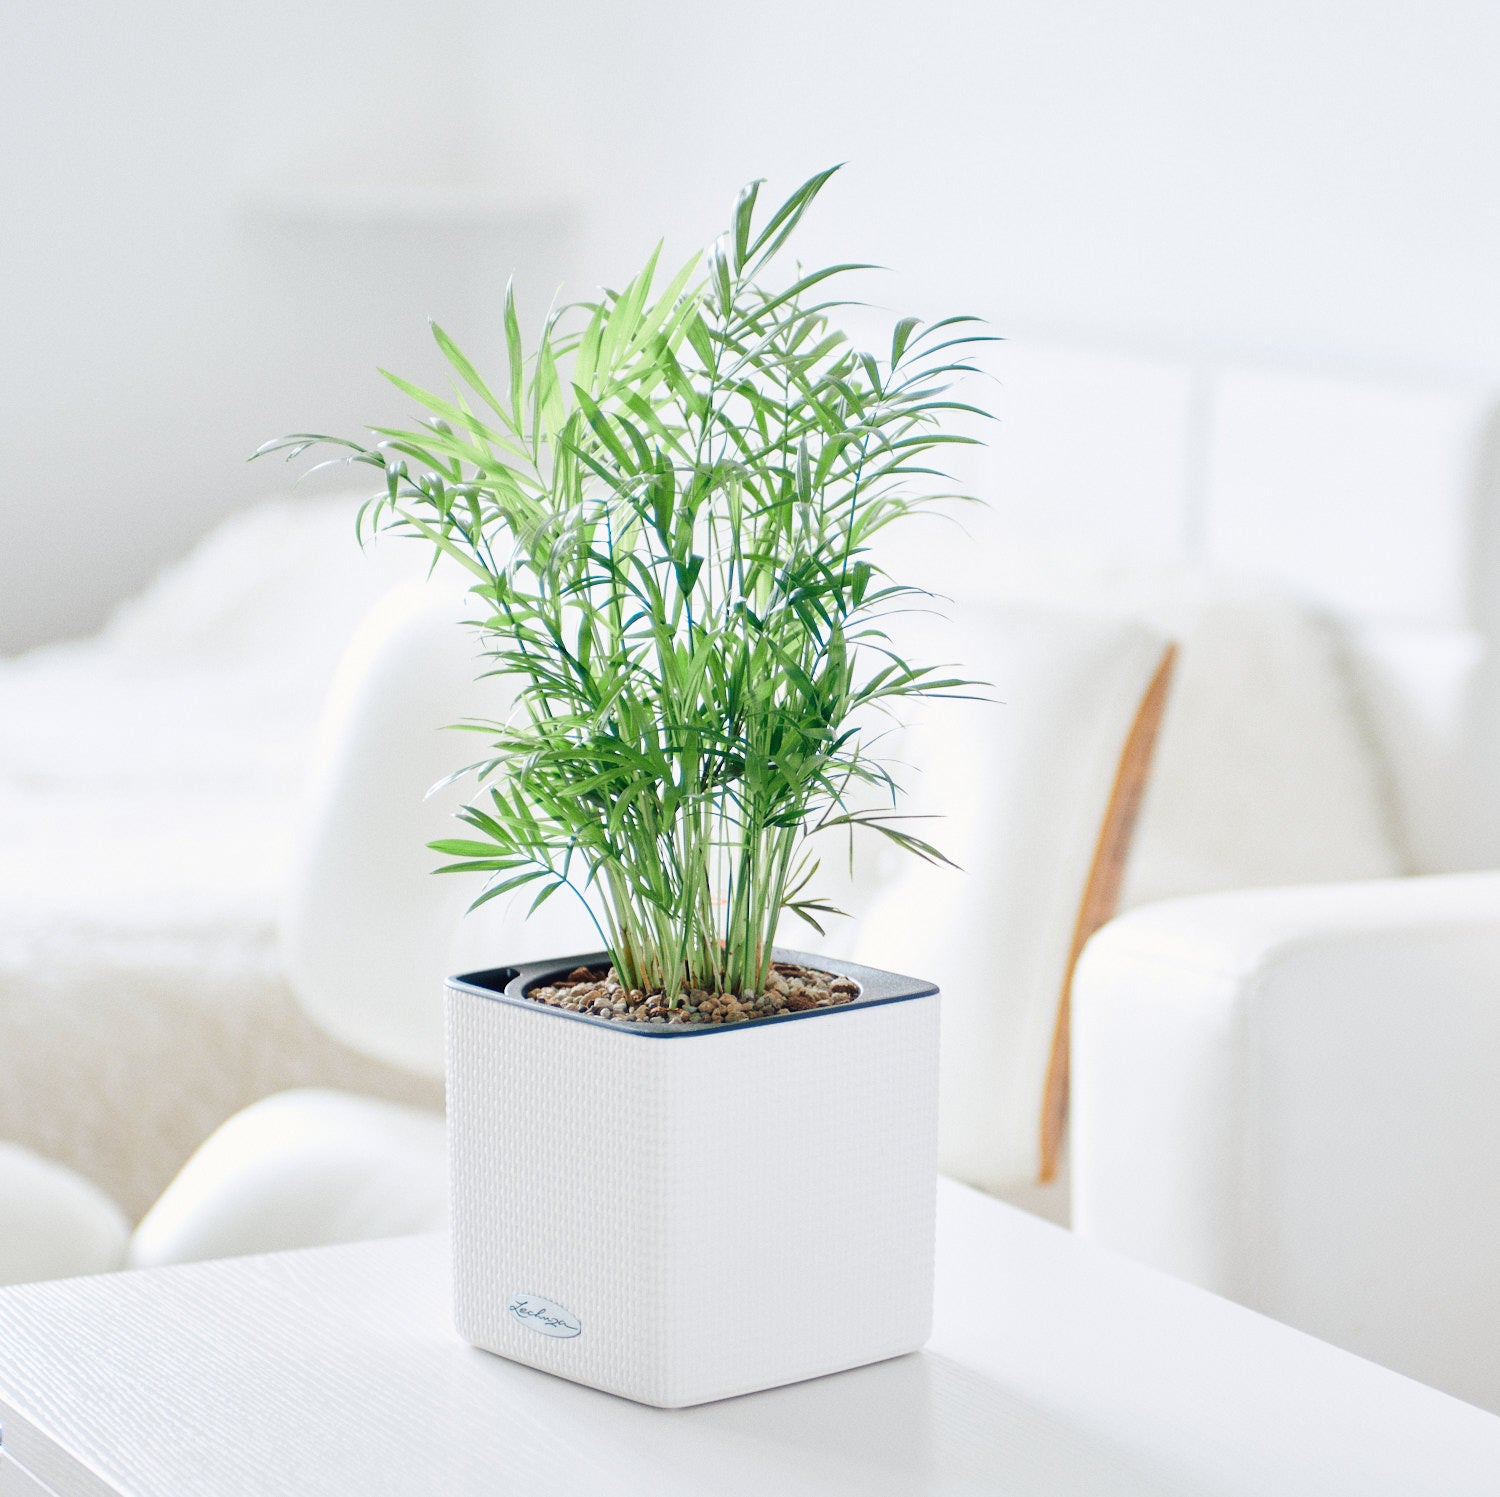 Bella Palm In Lechuza Cube 14 White Planter | My City Plants